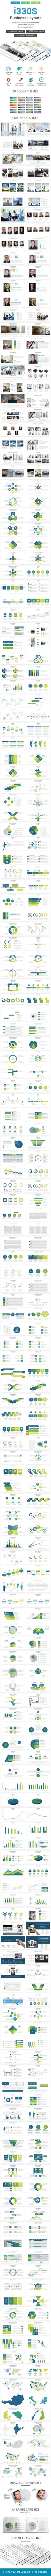 i330S Business Layouts PowerPoint Presentation Template - Business PowerPoint Templates